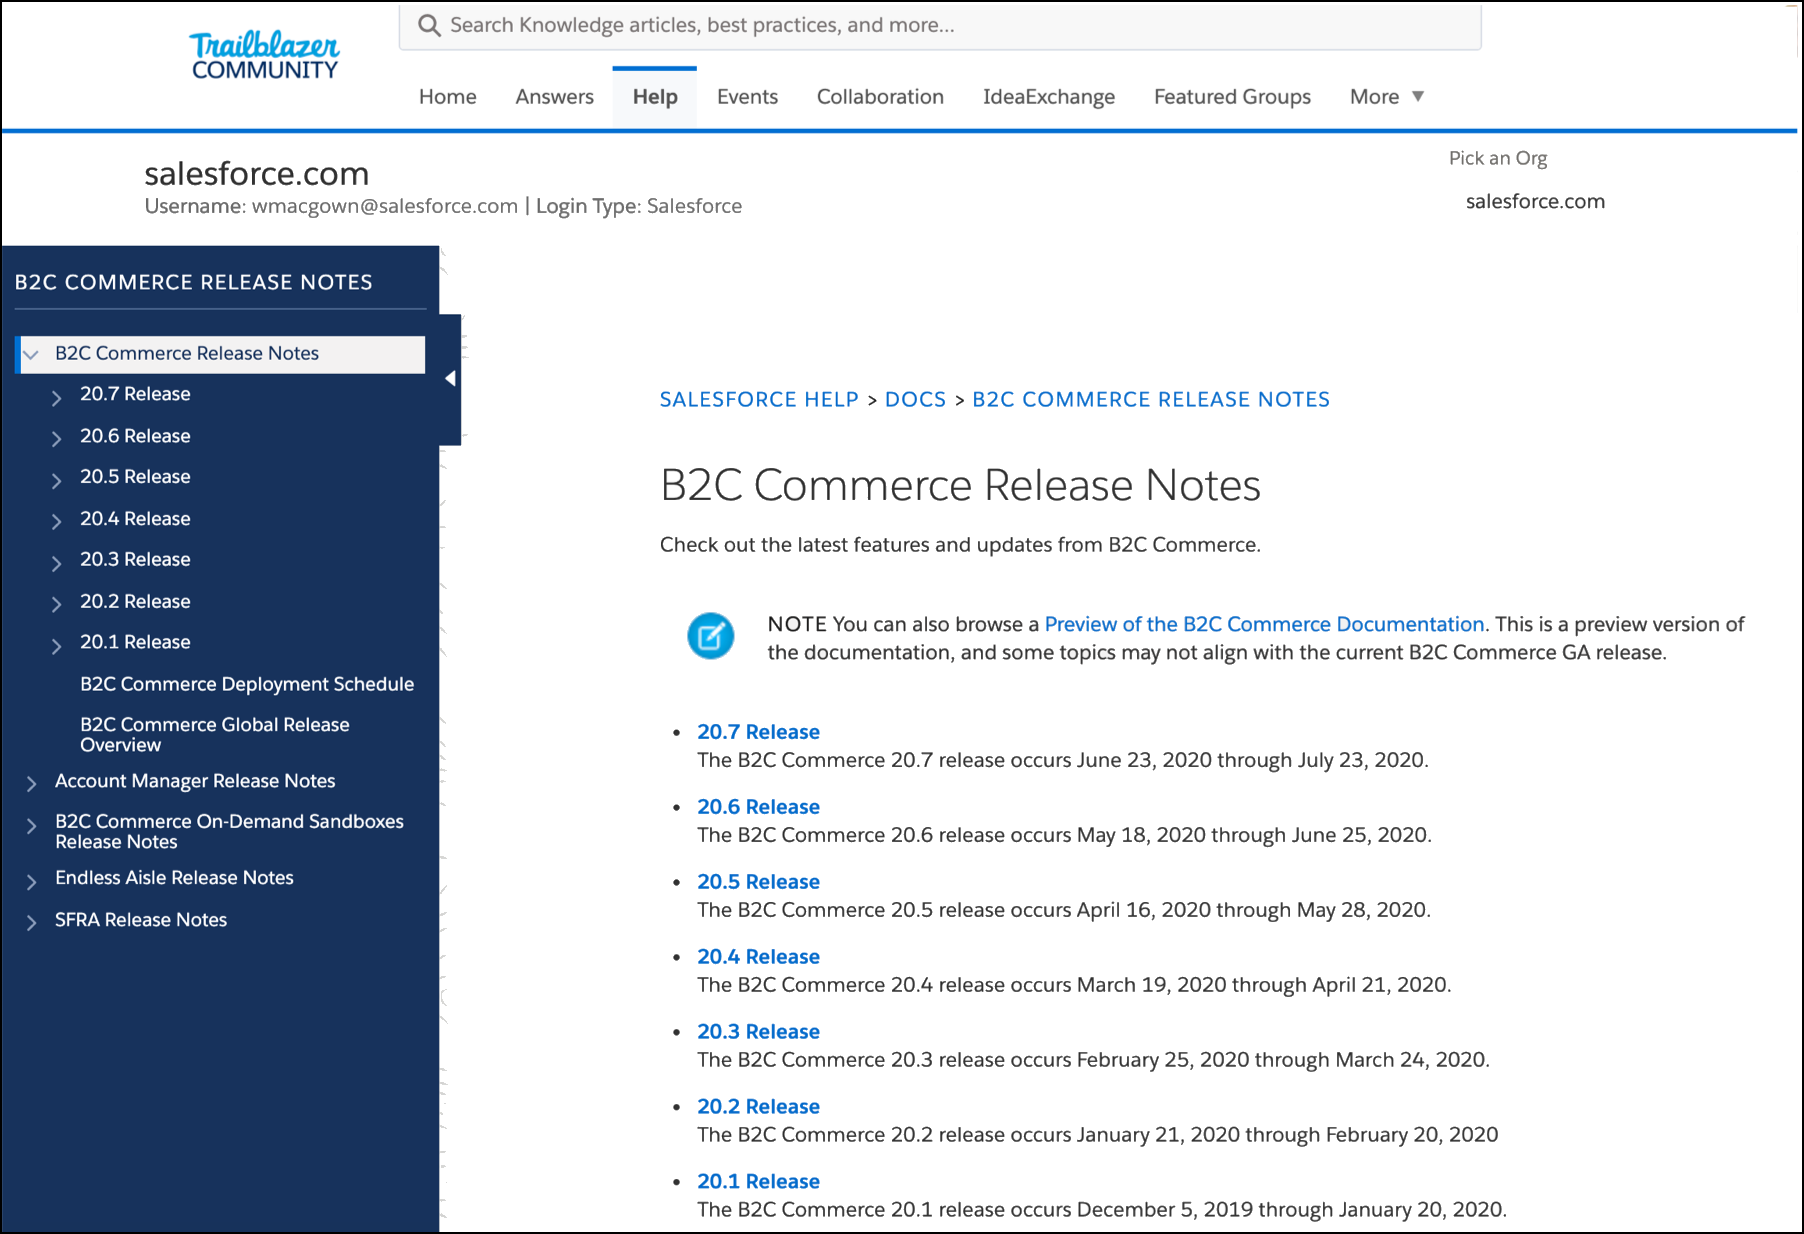 View Release Notes on the Trailblazer Community portal